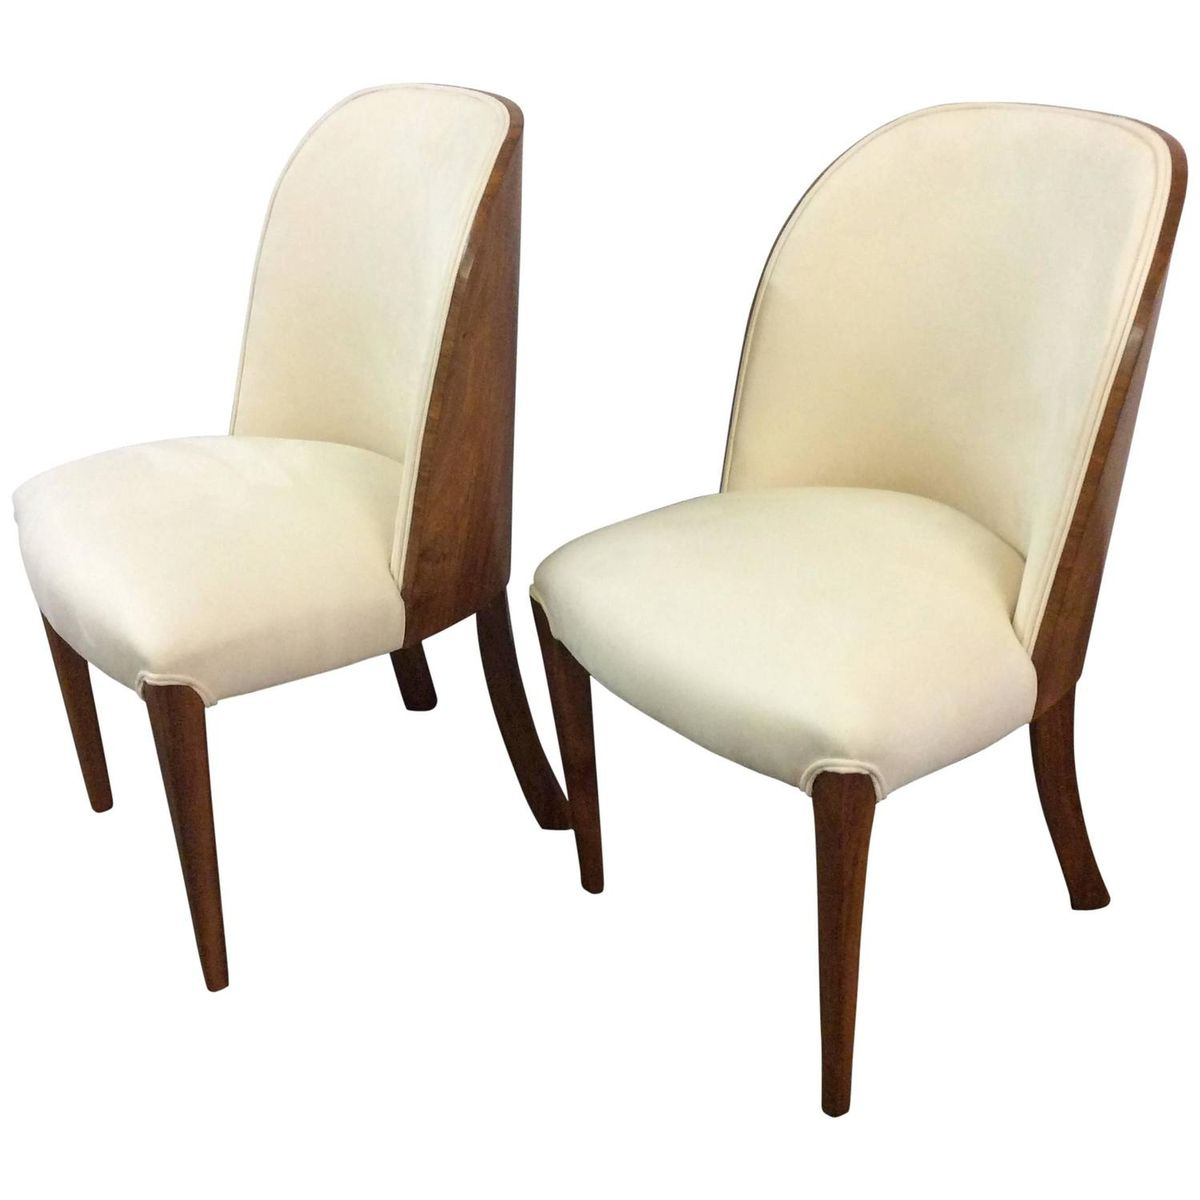 Art deco walnut tub chairs by harry and lou epstein 1930s set of 2 for sale at pamono - Epstein art deco furniture ...